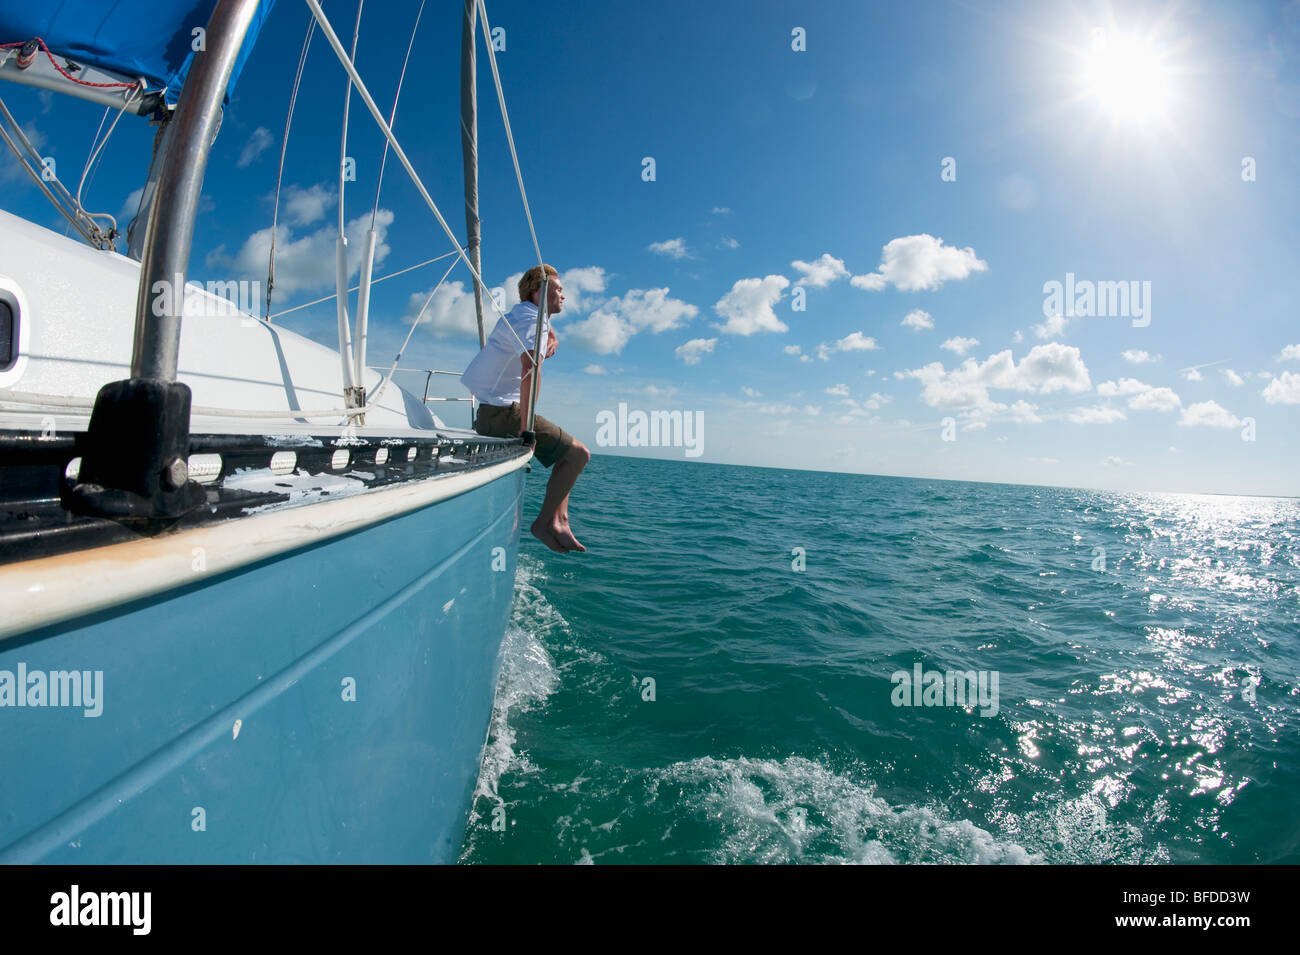 A man sits on the bow of a boat off of Florida. - Stock Image